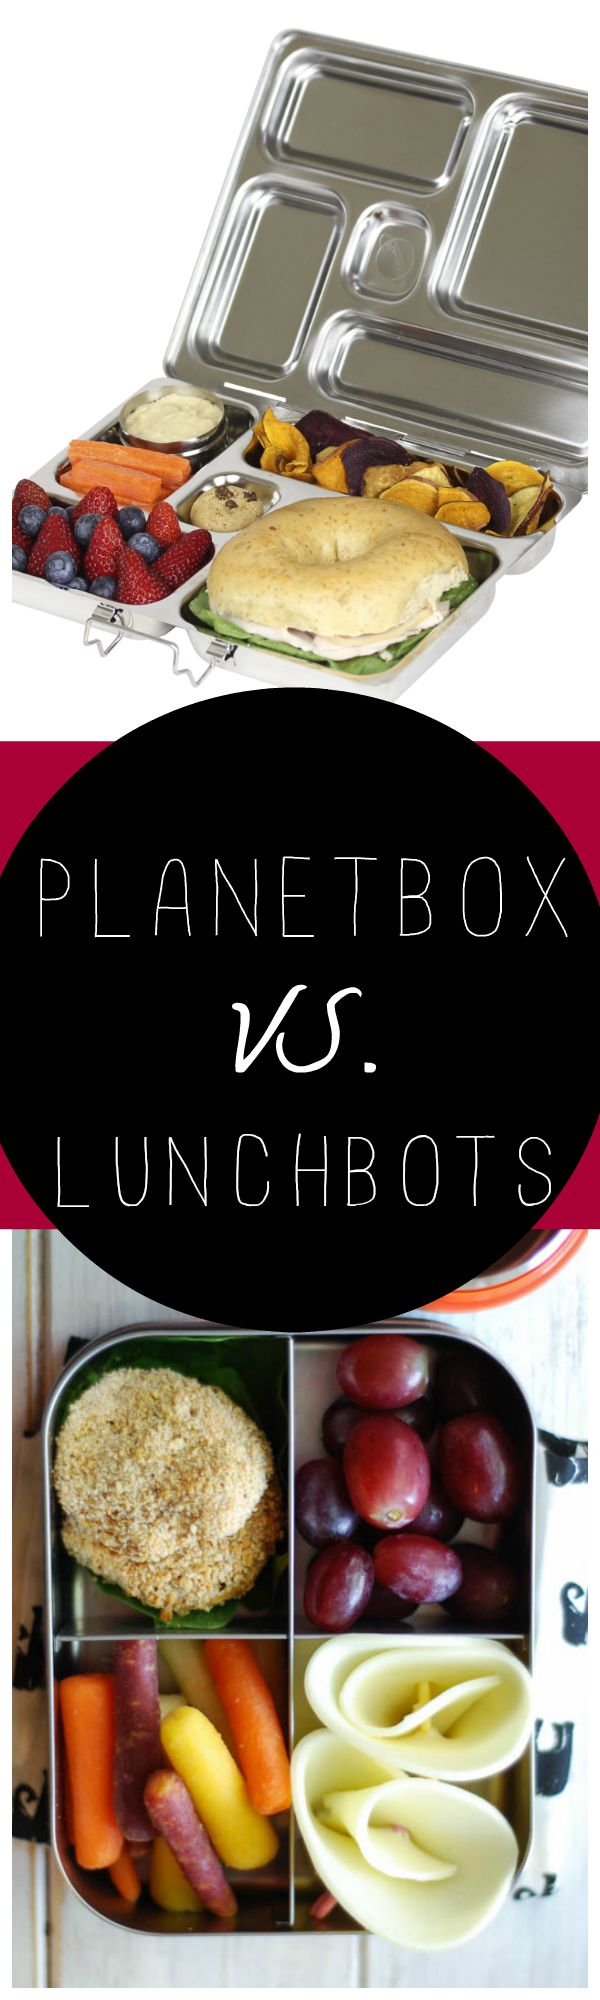 Planetbox Vs. LunchBots Review || www.3boysunprocessed.com